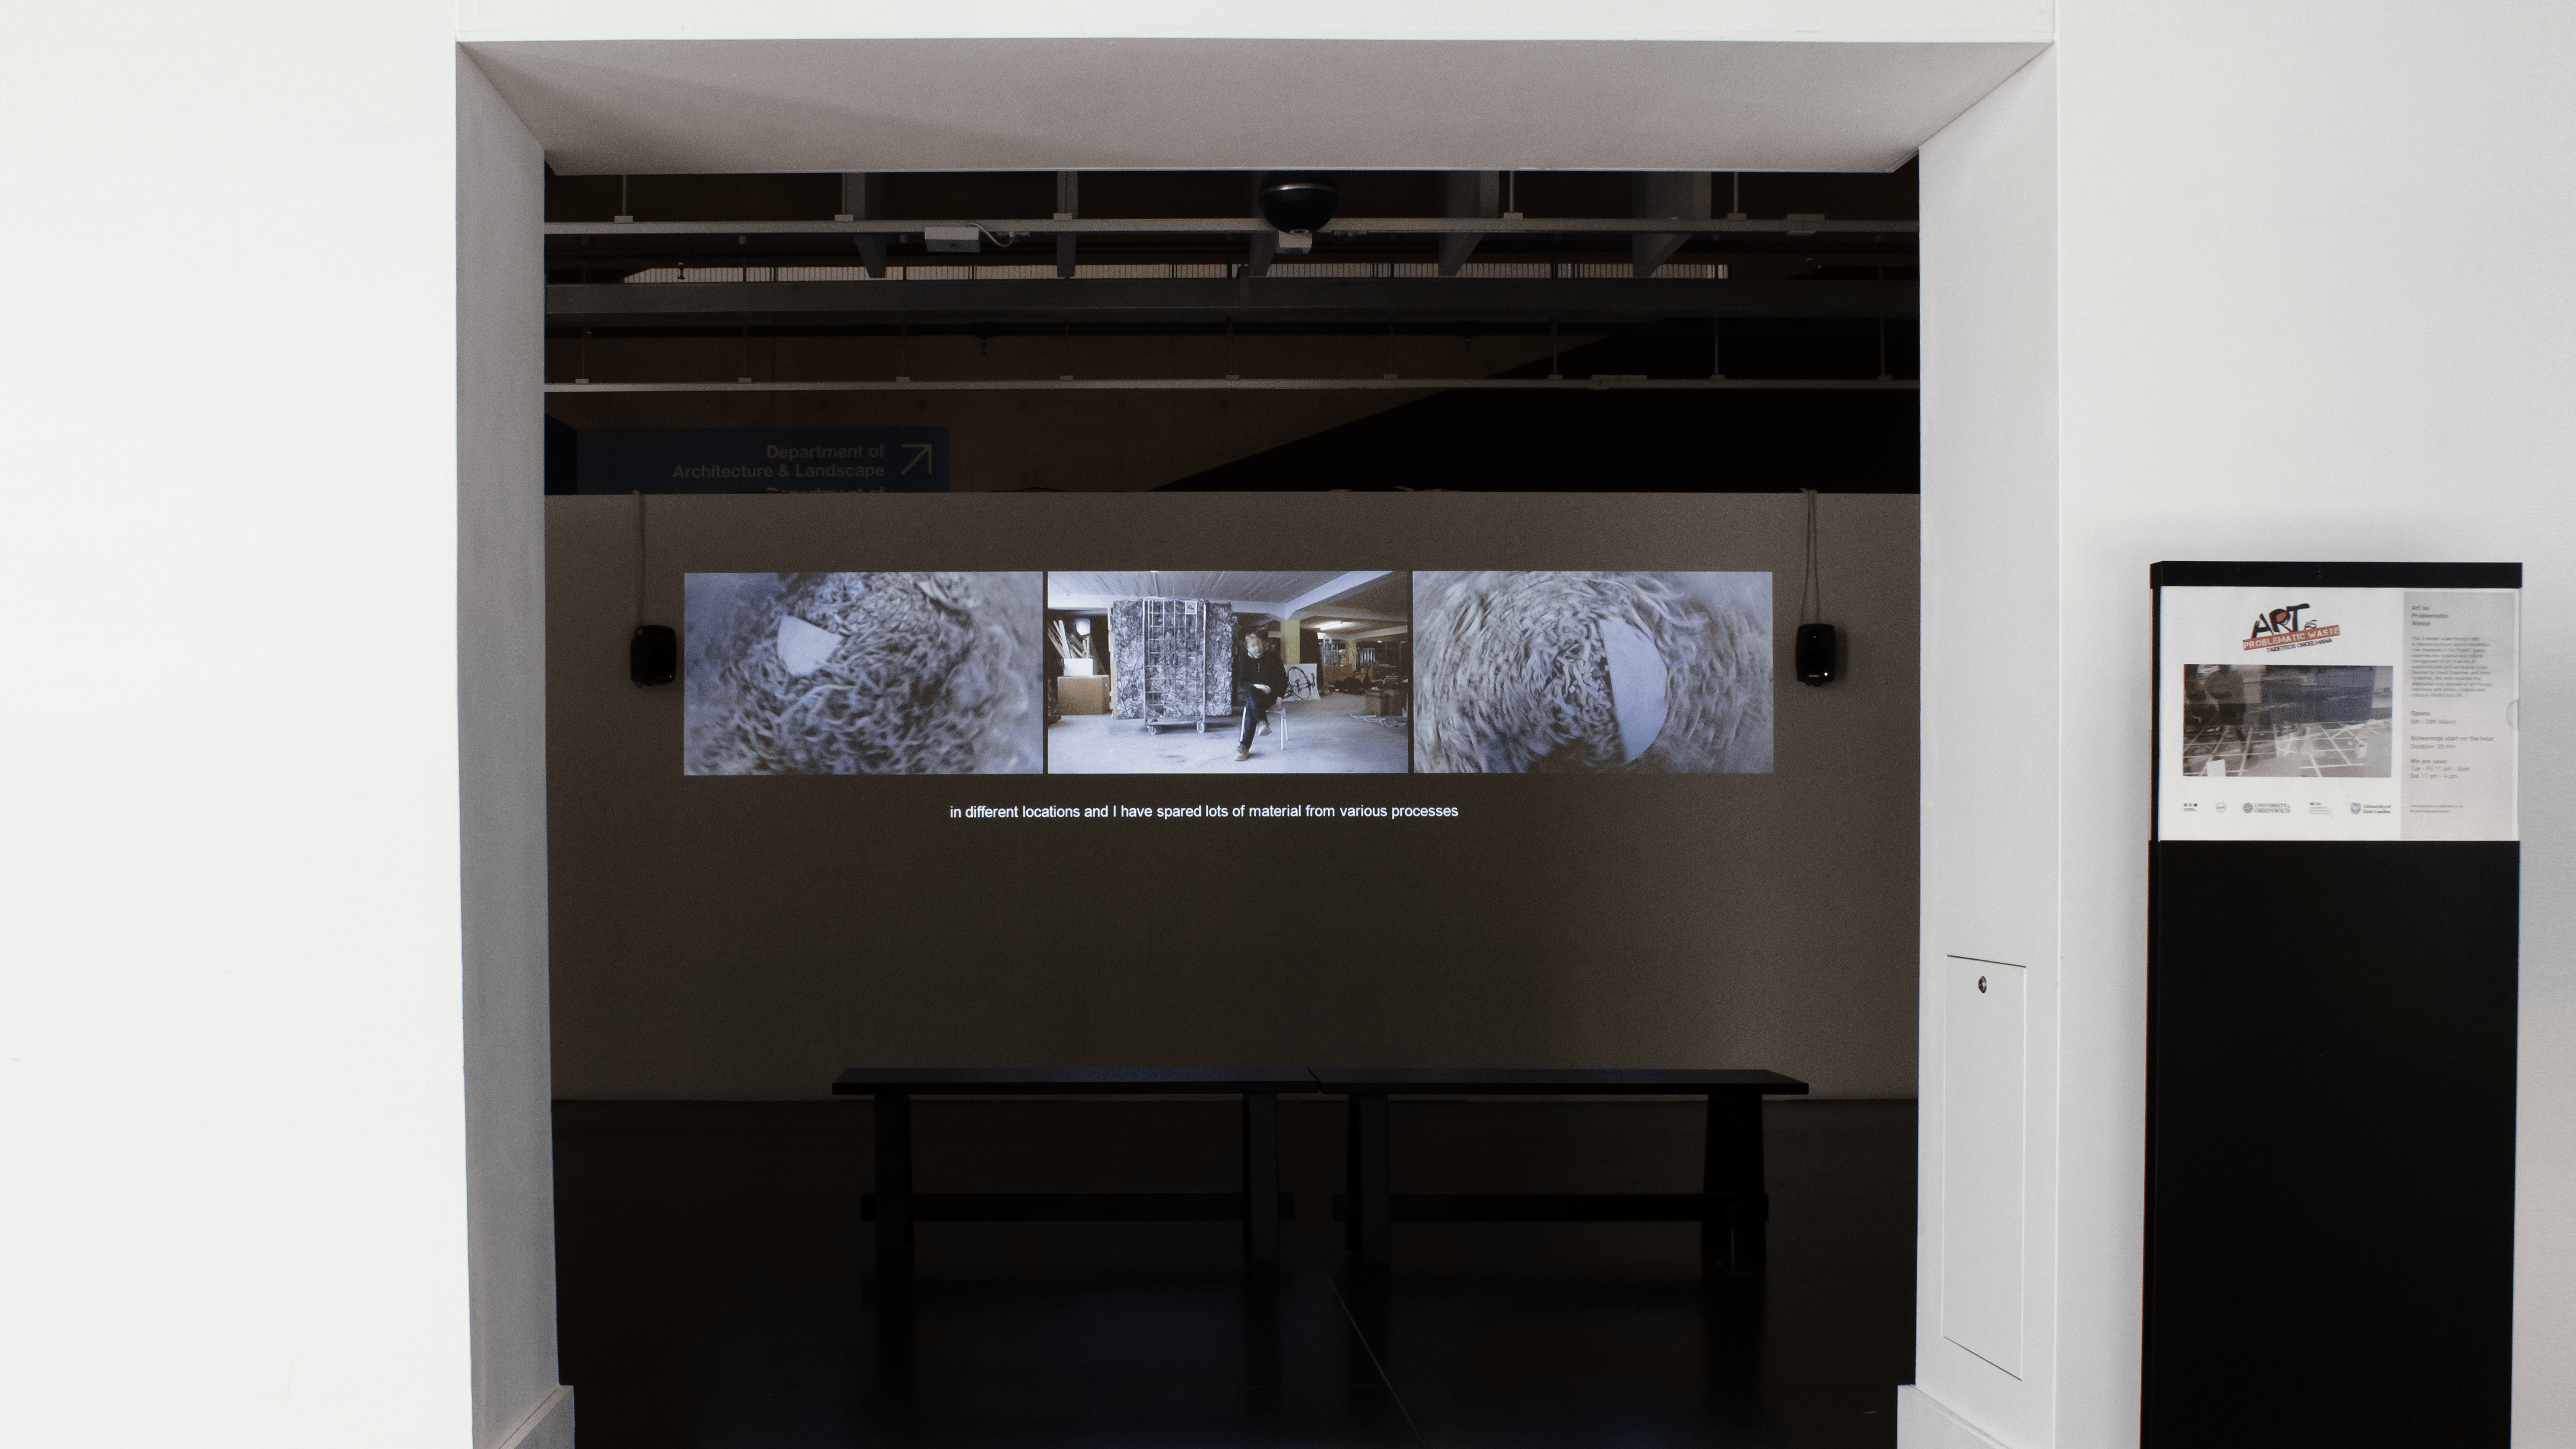 Installation shot of the Art as Problematic Waste Tryptych video by Aimo Hyvärinen and David Chapman,